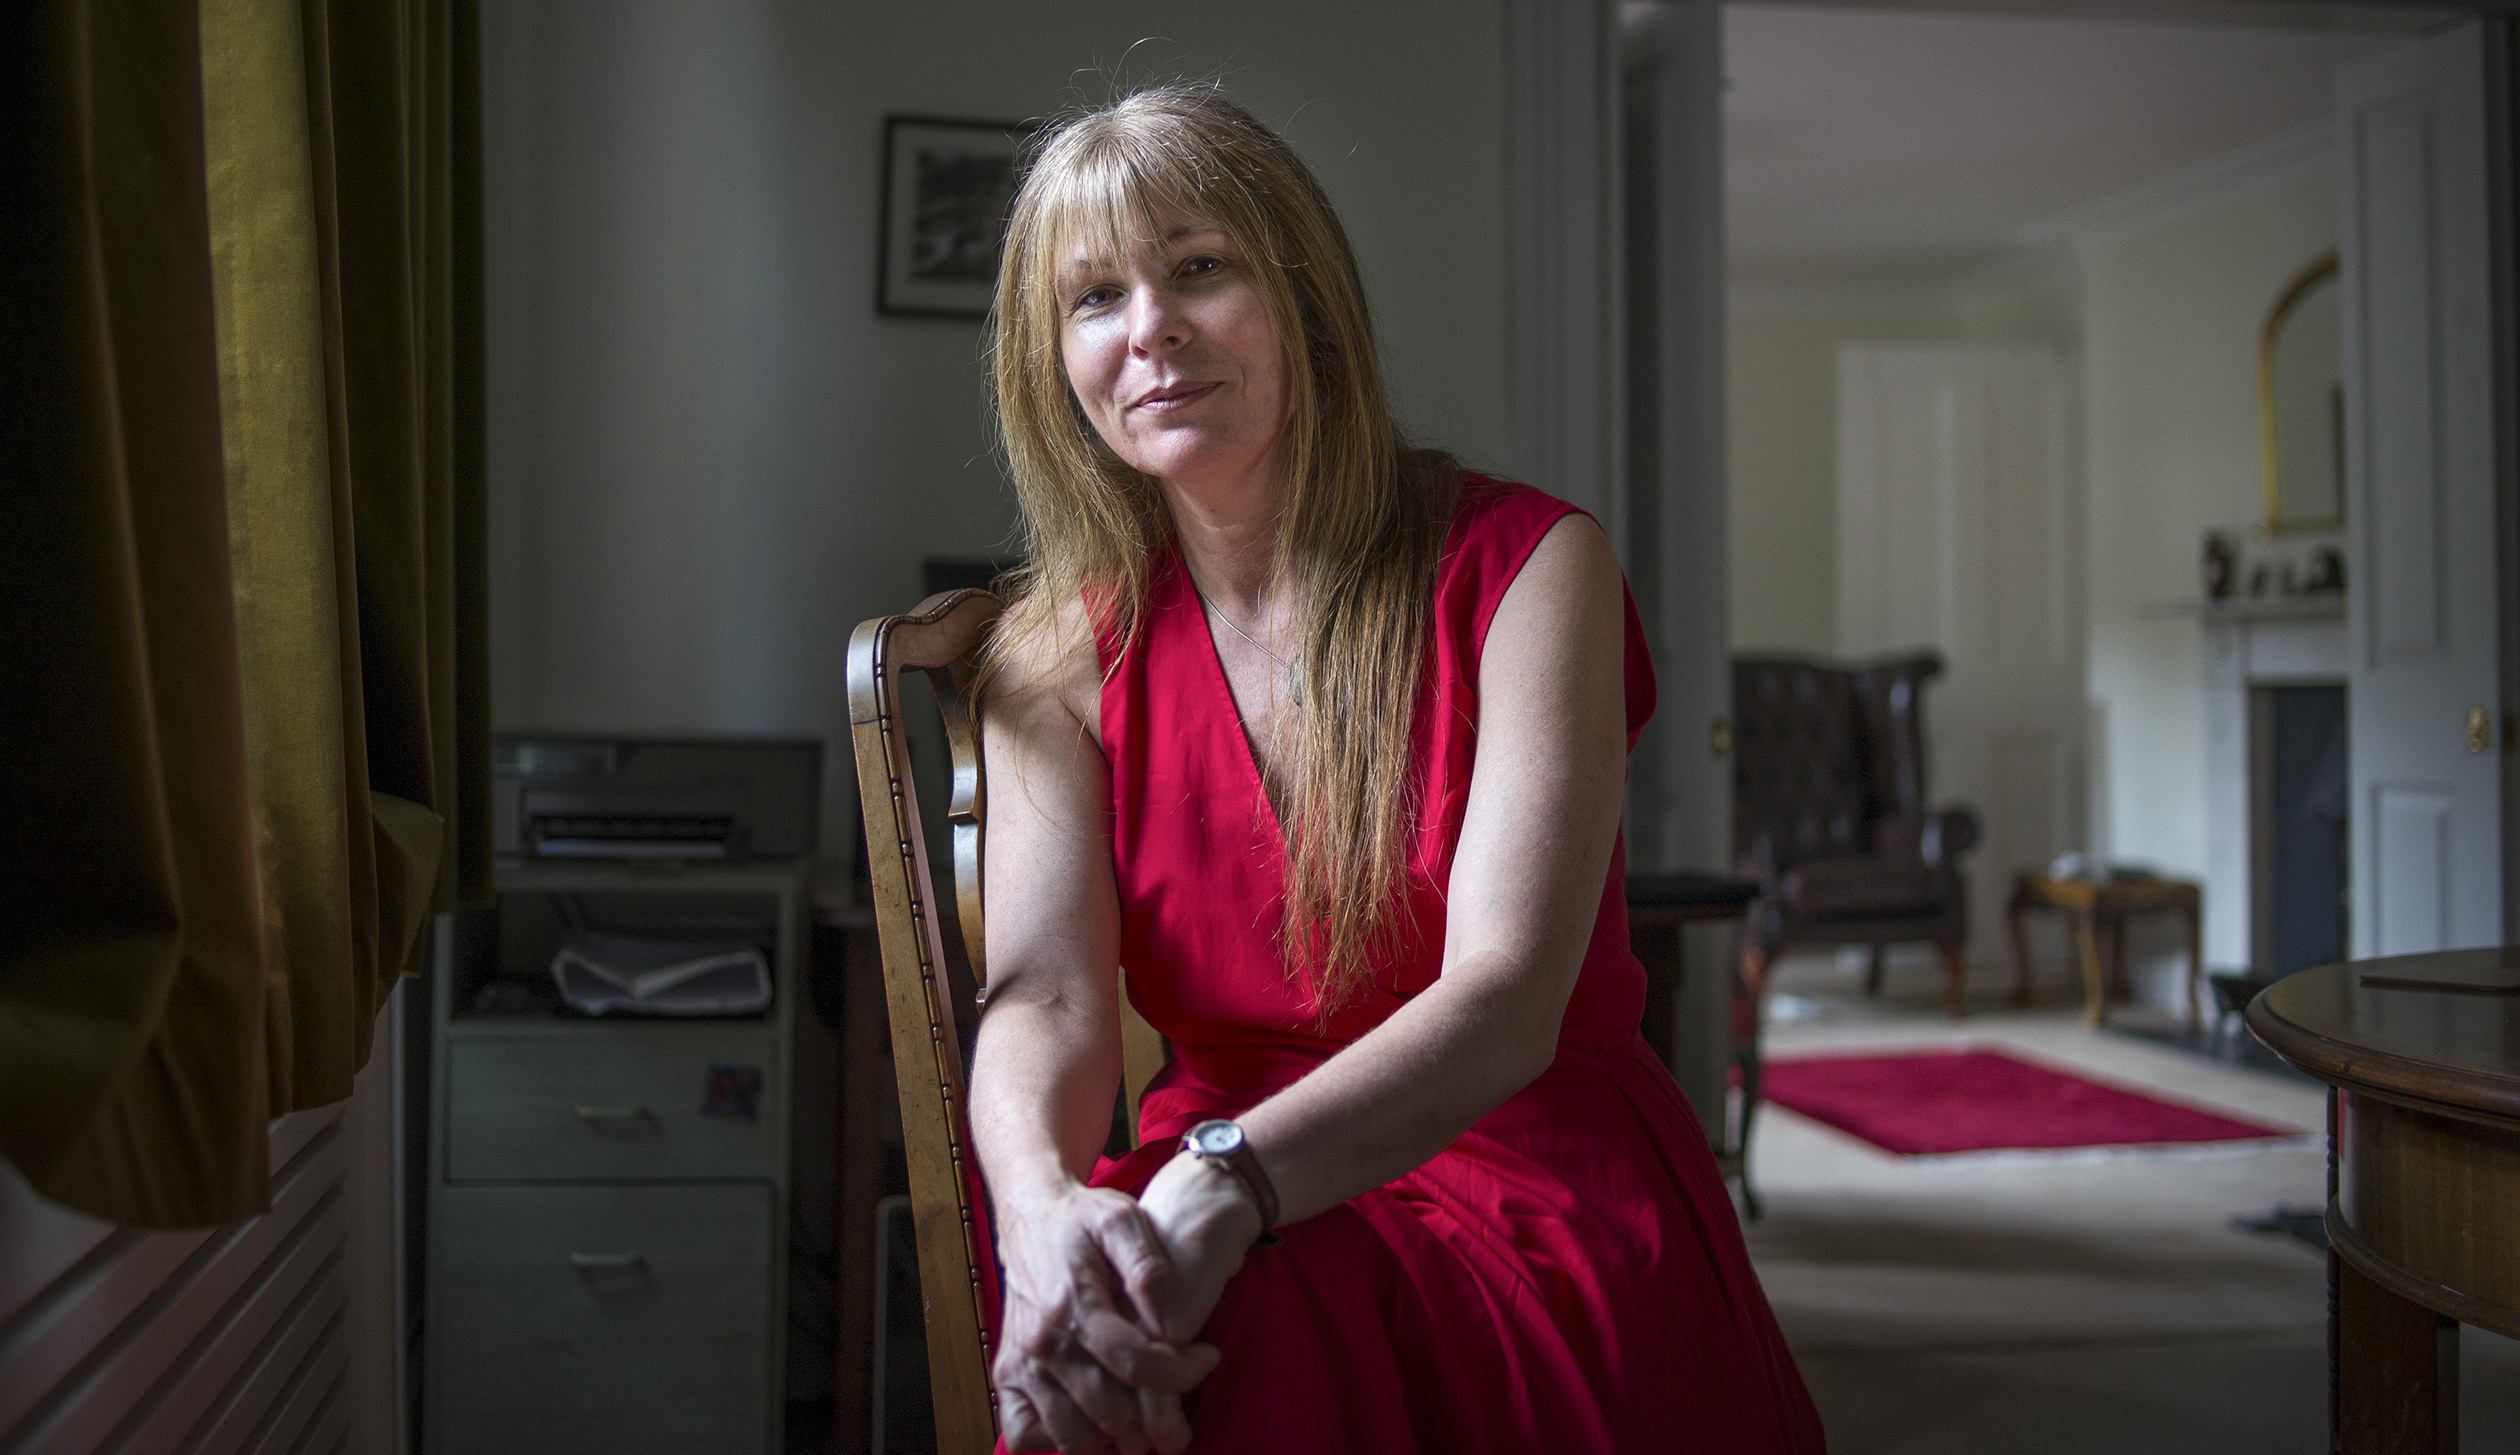 Clare Rewcastle Brown, who is barred from entering her native Malaysia, a former British colony, at her home in London.